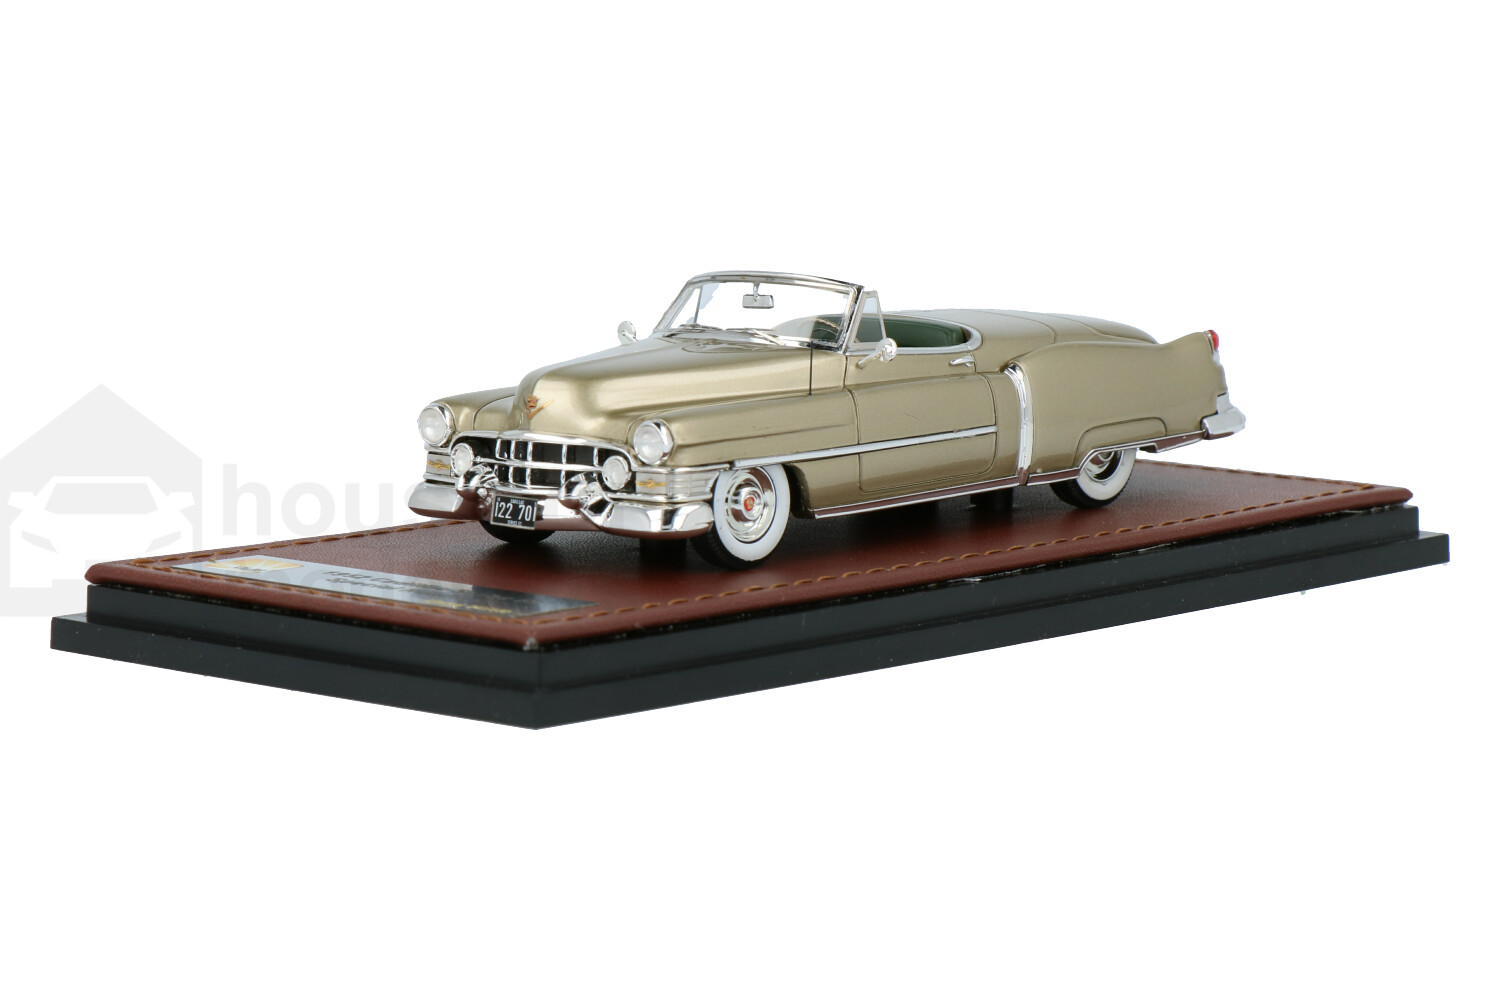 Cadillac Series 62 Special Roadster - Modelauto schaal 1:43